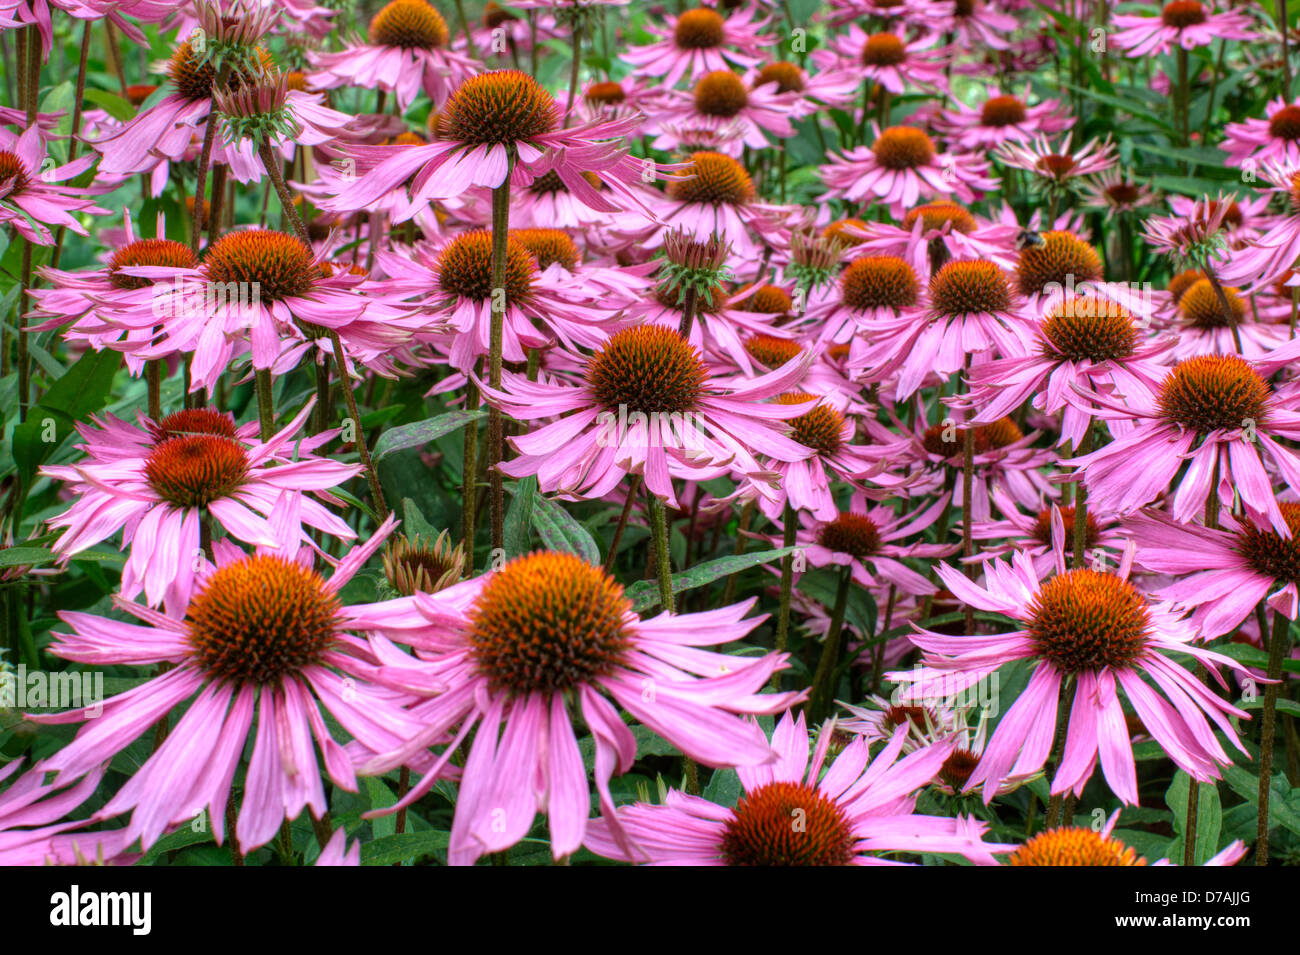 Purple and orange perennial flowers Echinacea Purpurea Maxima in a garden - Stock Image